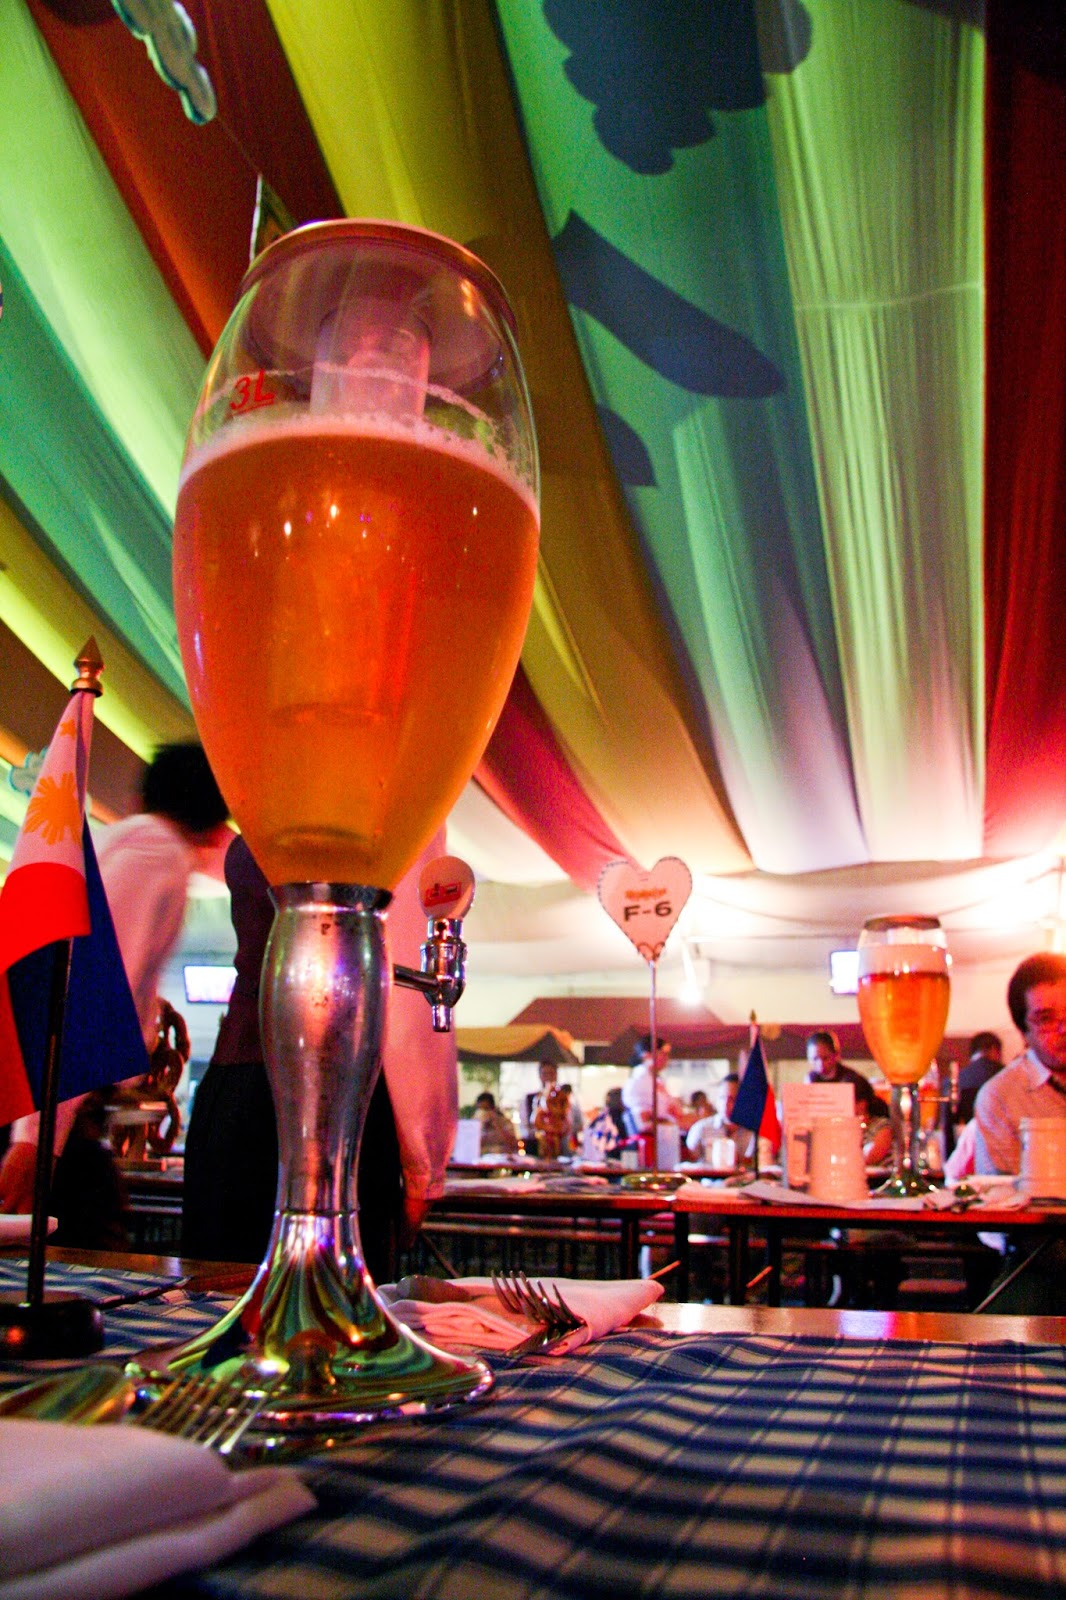 ... beer festival in the Philippines the 76th Oktoberfest on the 17th and 18th of October at the Sofitel Philippine Plaza Manilau0027s Harbor Garden Tent. & 76th Oktoberfest at the Sofitel Philippine Plaza Manila - IEVENTS.ETC